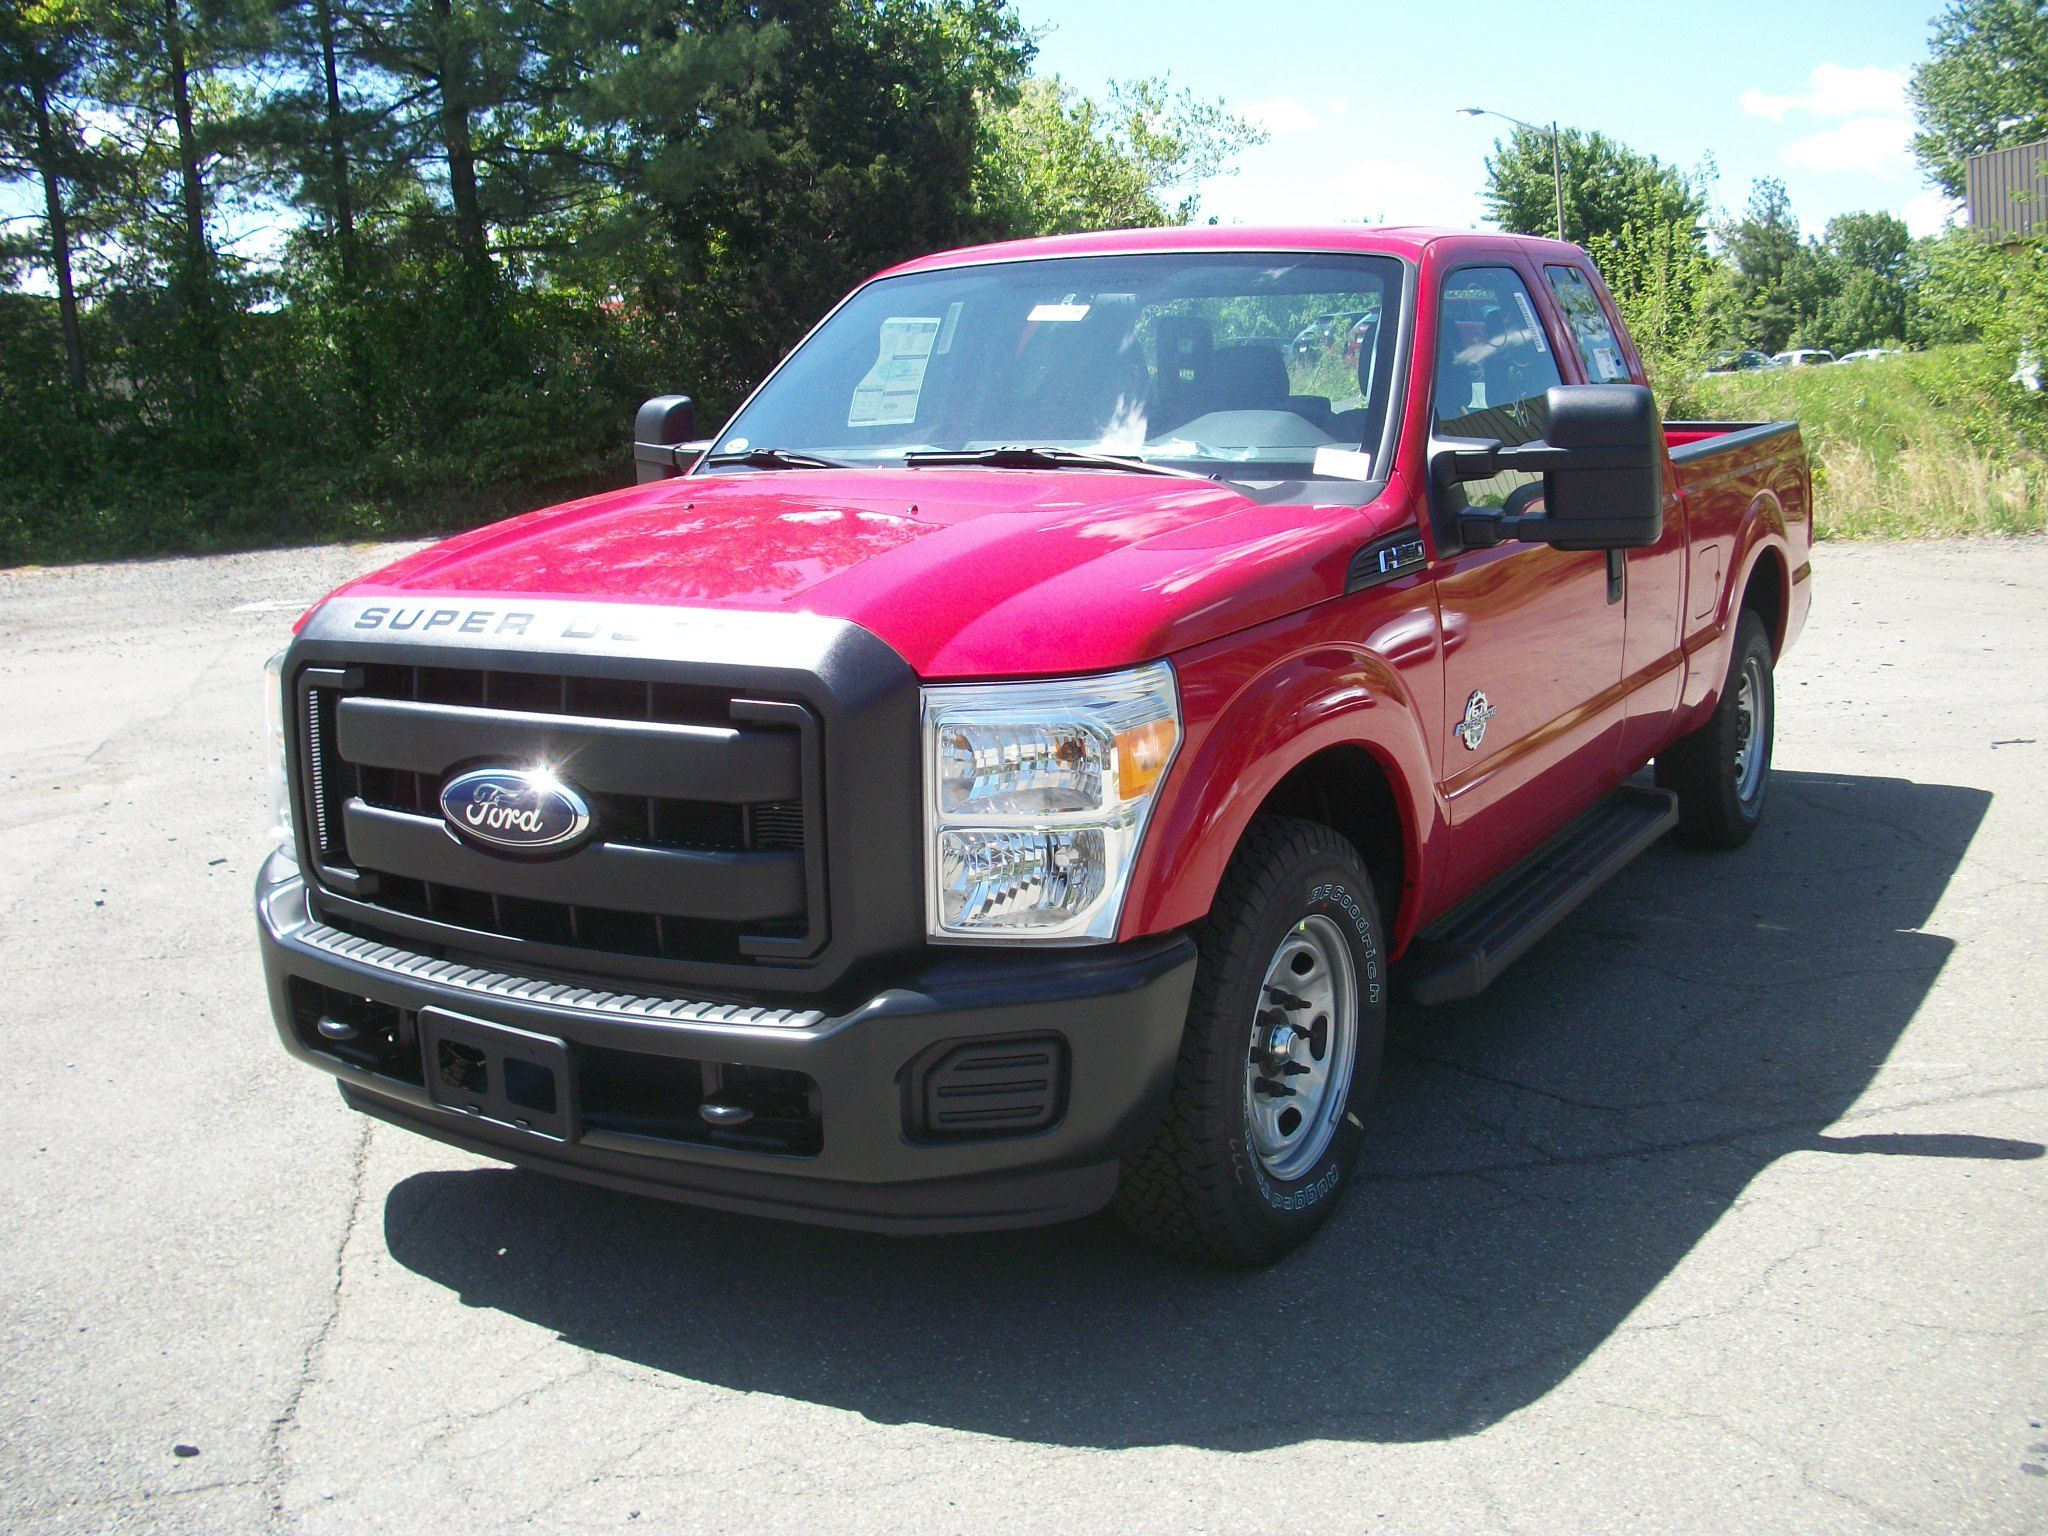 Rather than red colored Ford F 150 a treat of real big Ford F 250